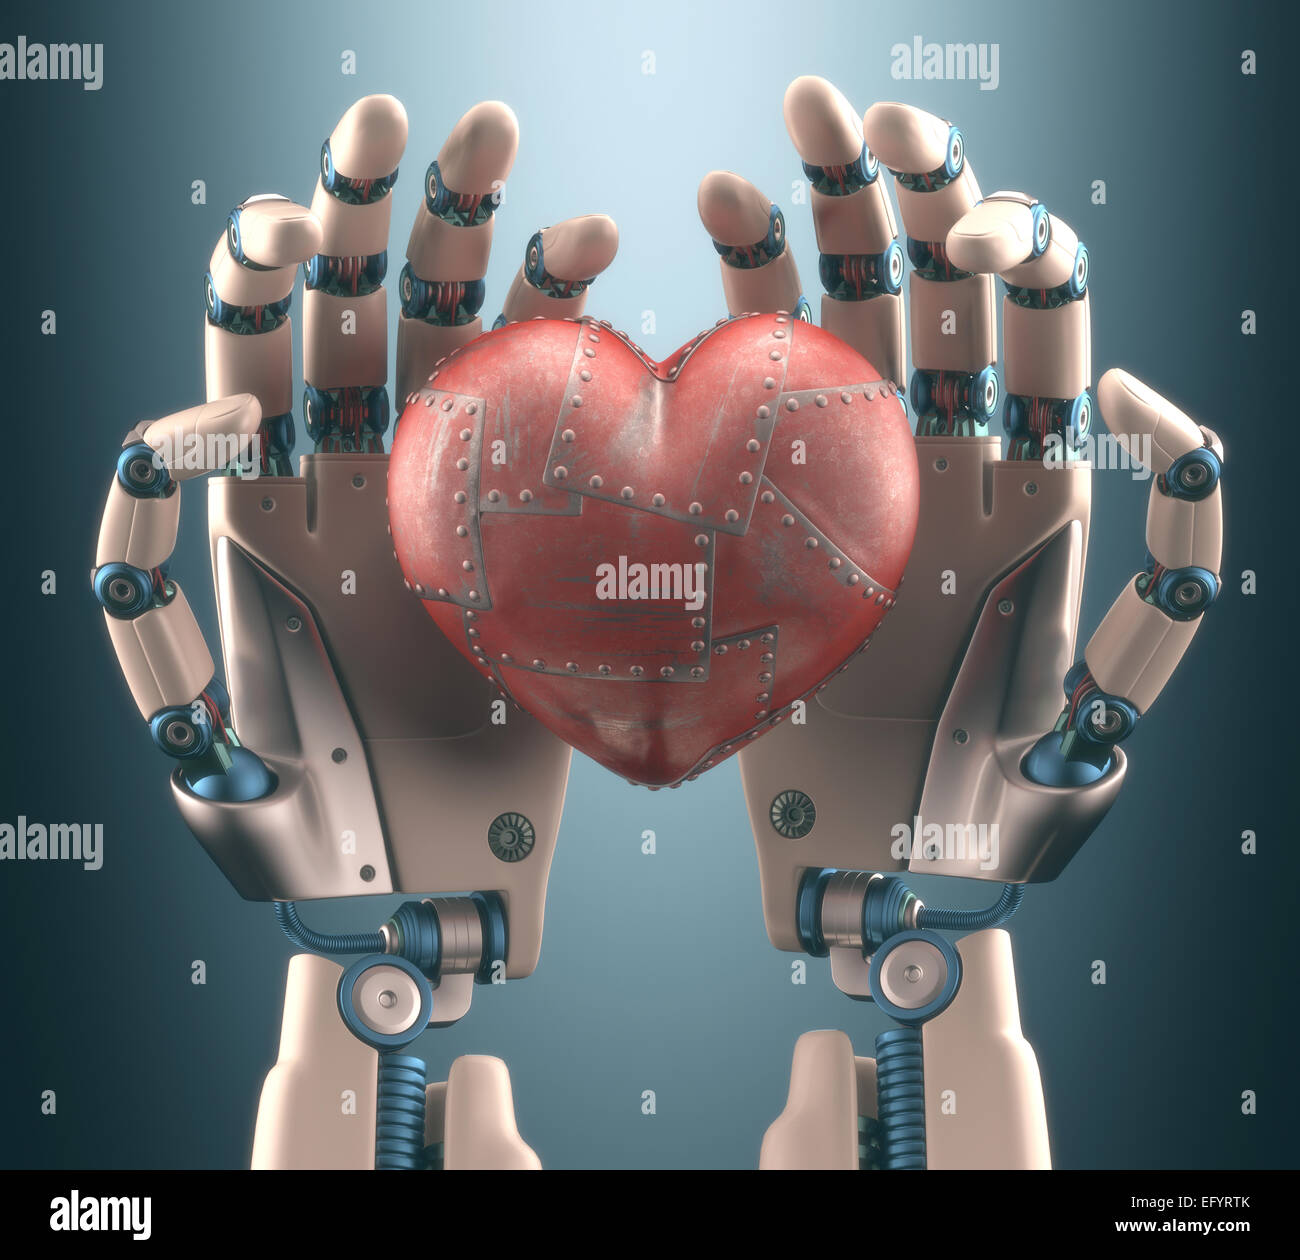 Main tenant un robot metal heart. Chemin de détourage inclus. Photo Stock